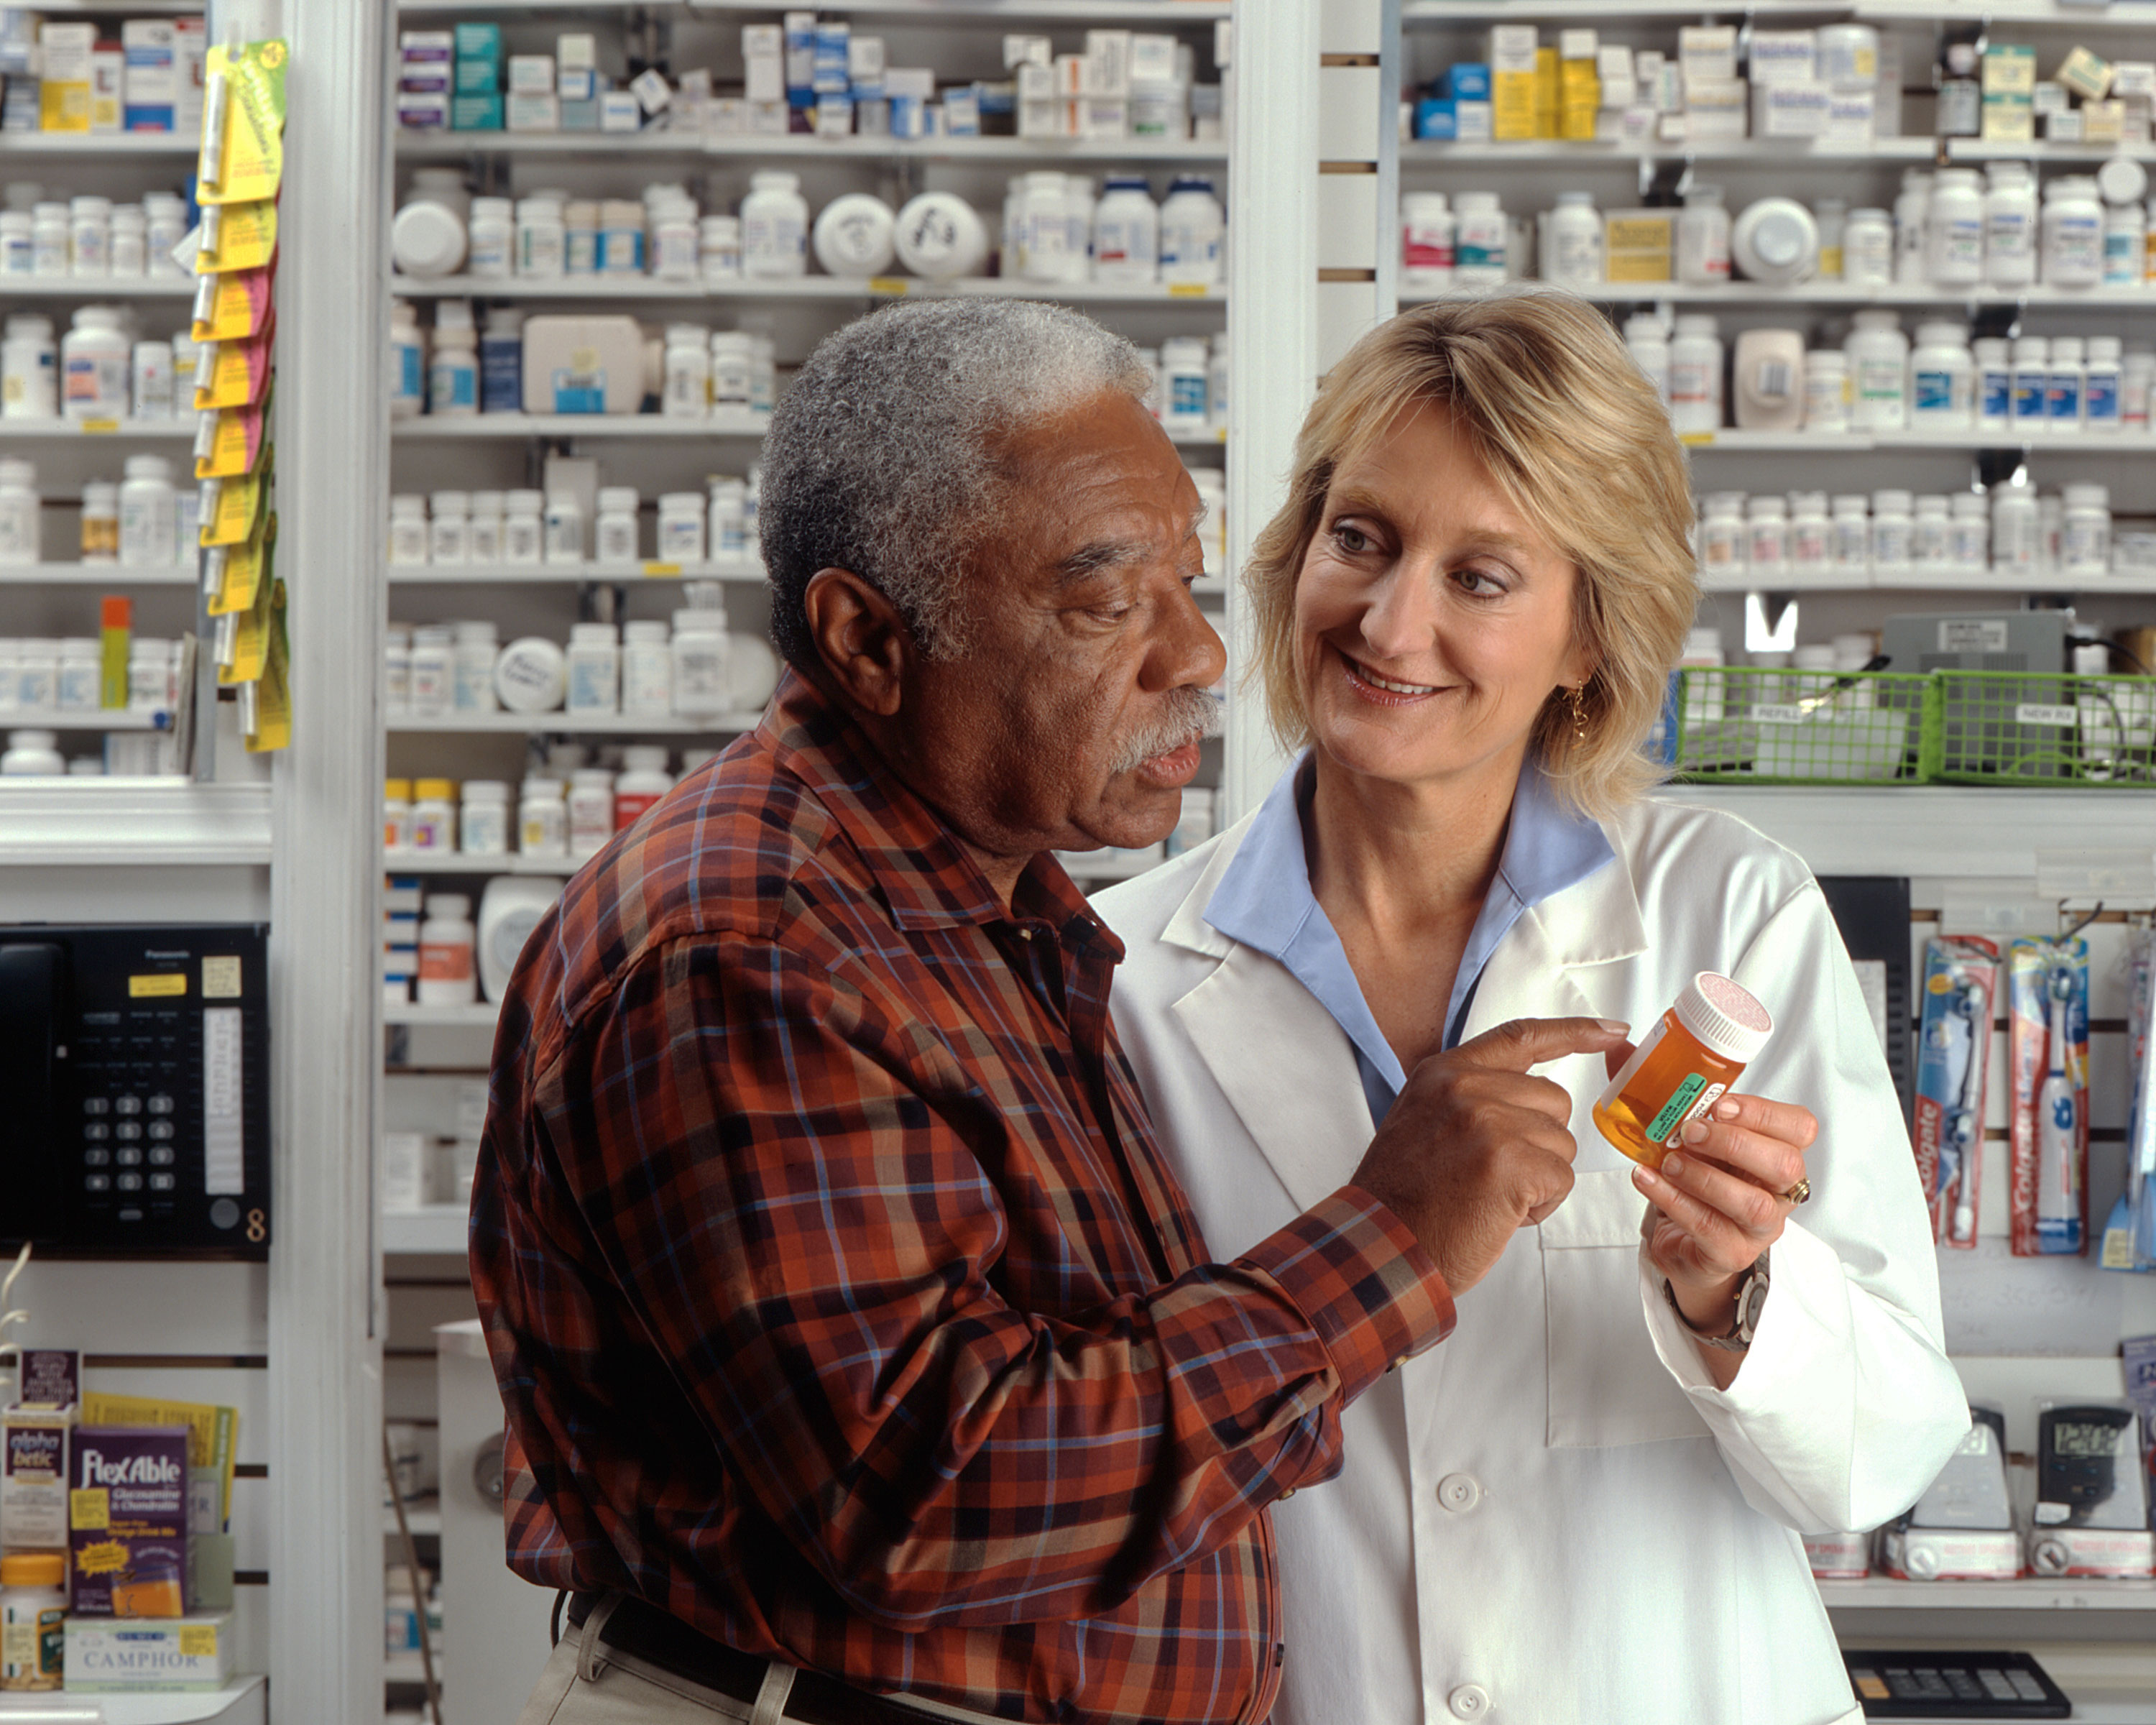 pharmacist helps man